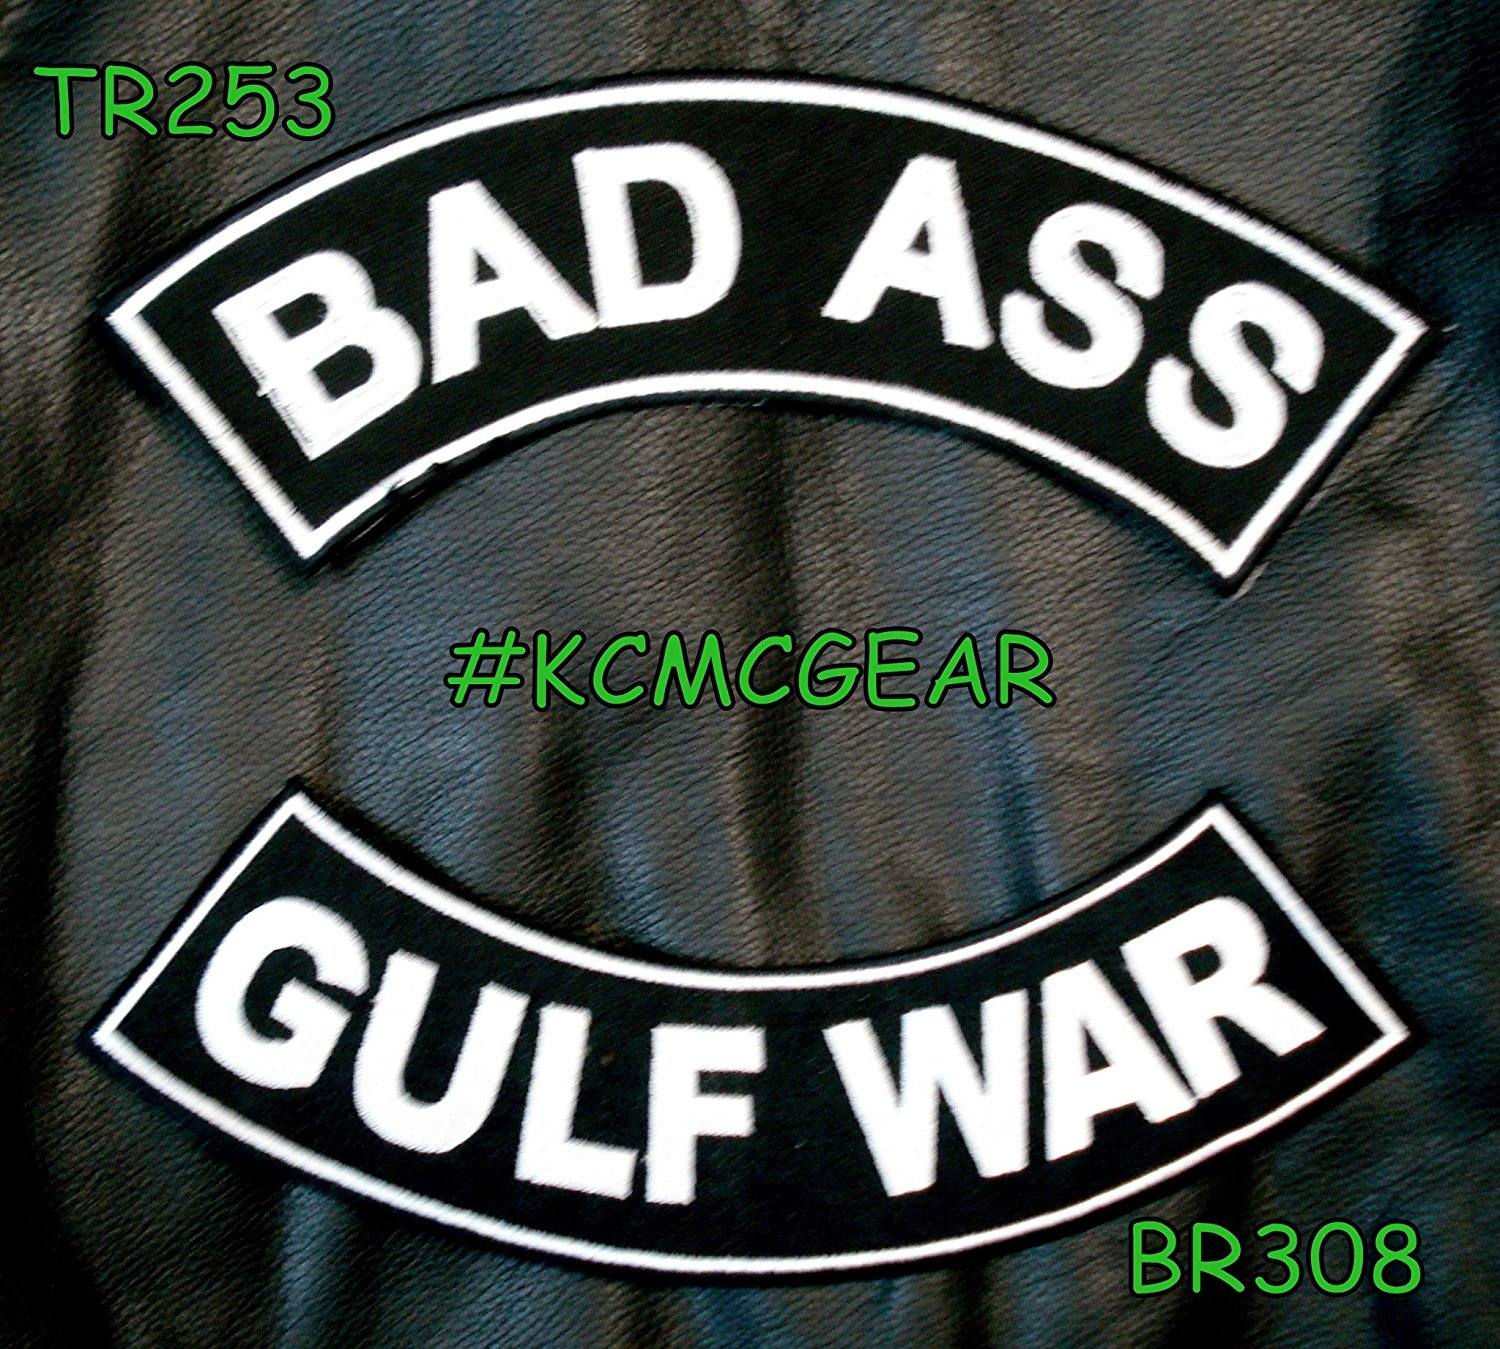 Military Biker Patch Set Bad Ass Gulf War Embroidered Patches Sew on Patches for Jackets